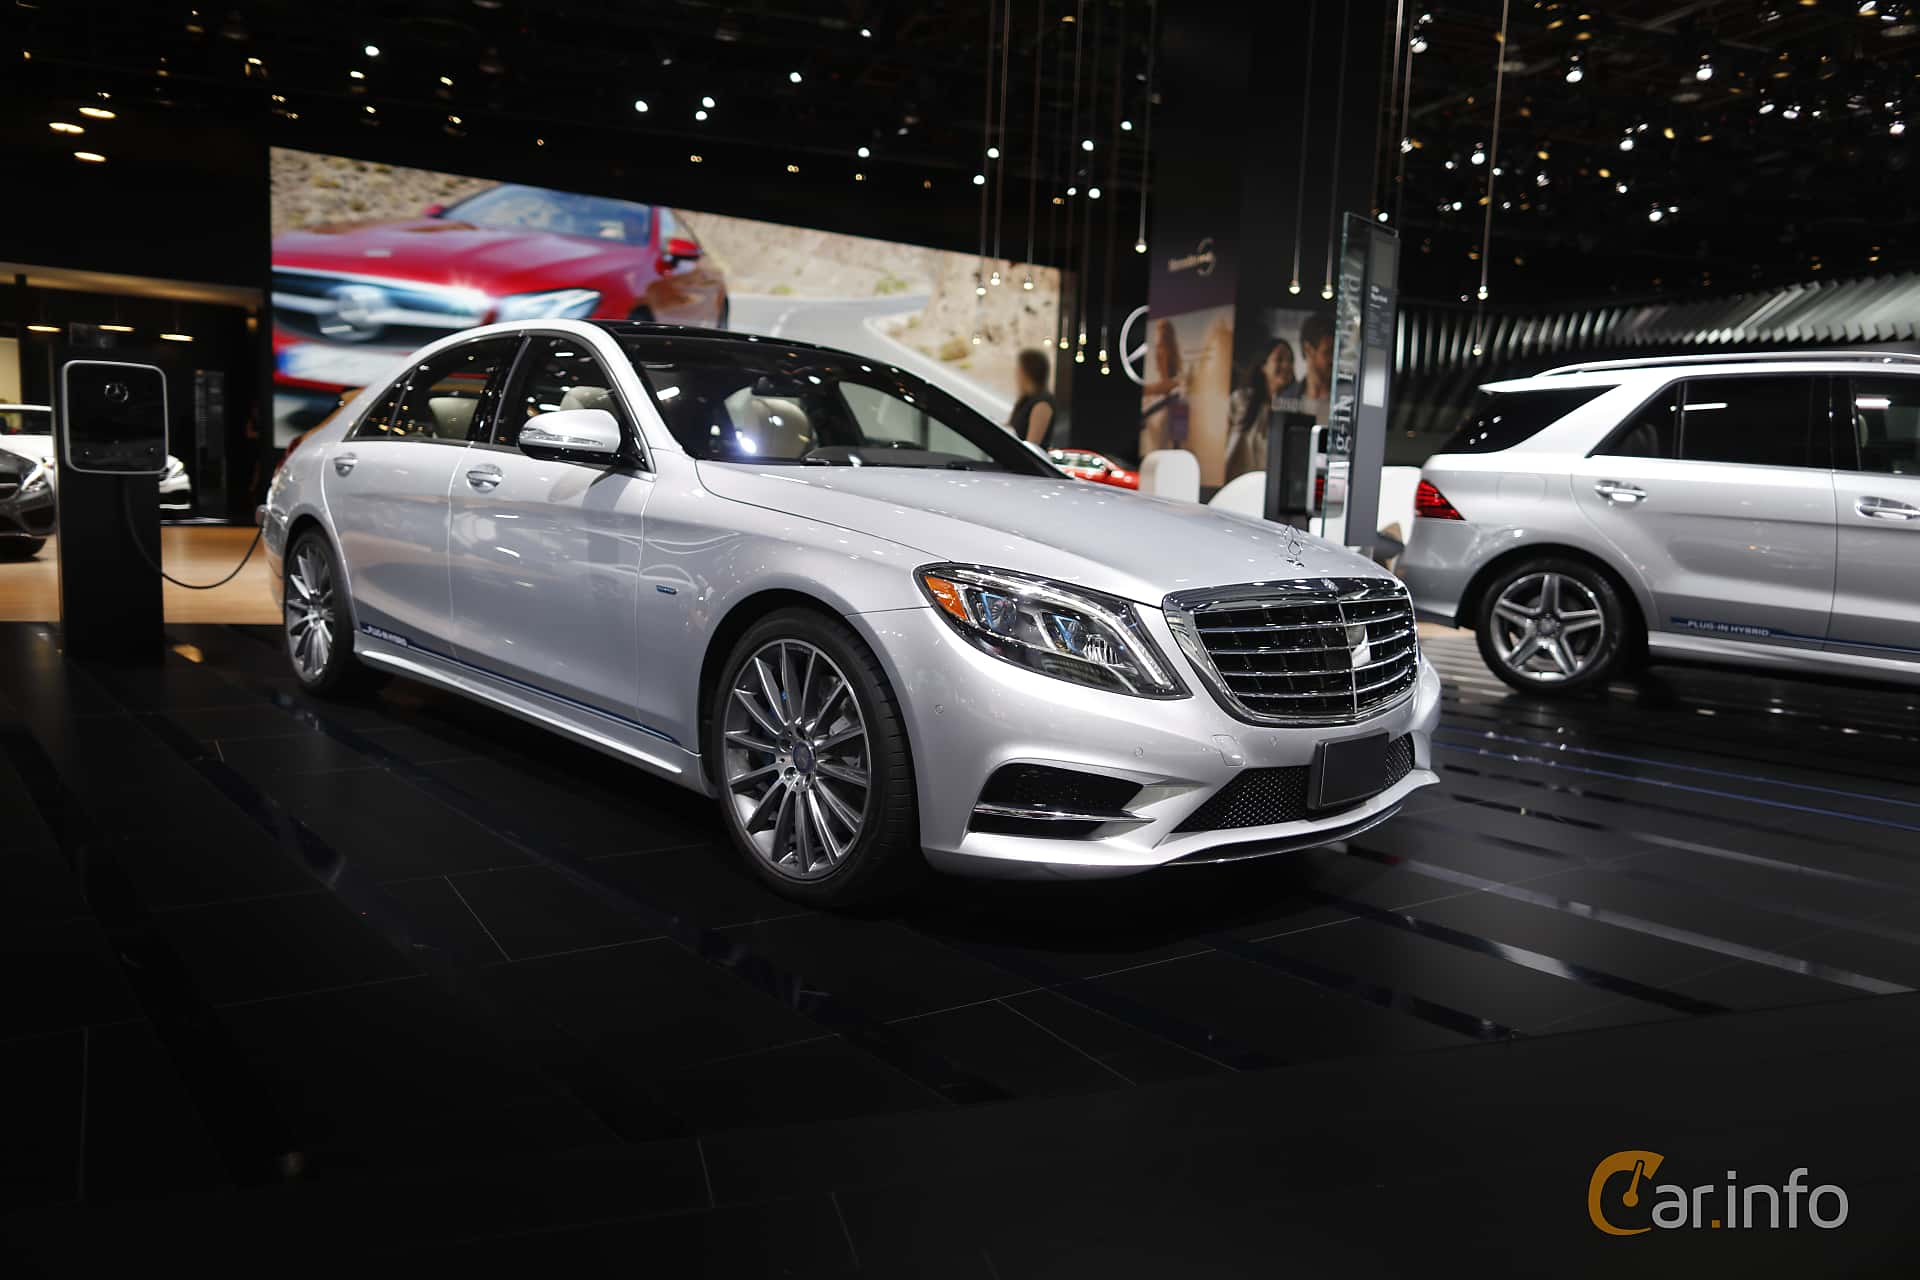 Mercedes-Benz S 500 e L 3.0 V6 7G-Tronic Plus, 442hk, 2017 at North American International Auto Show 2017